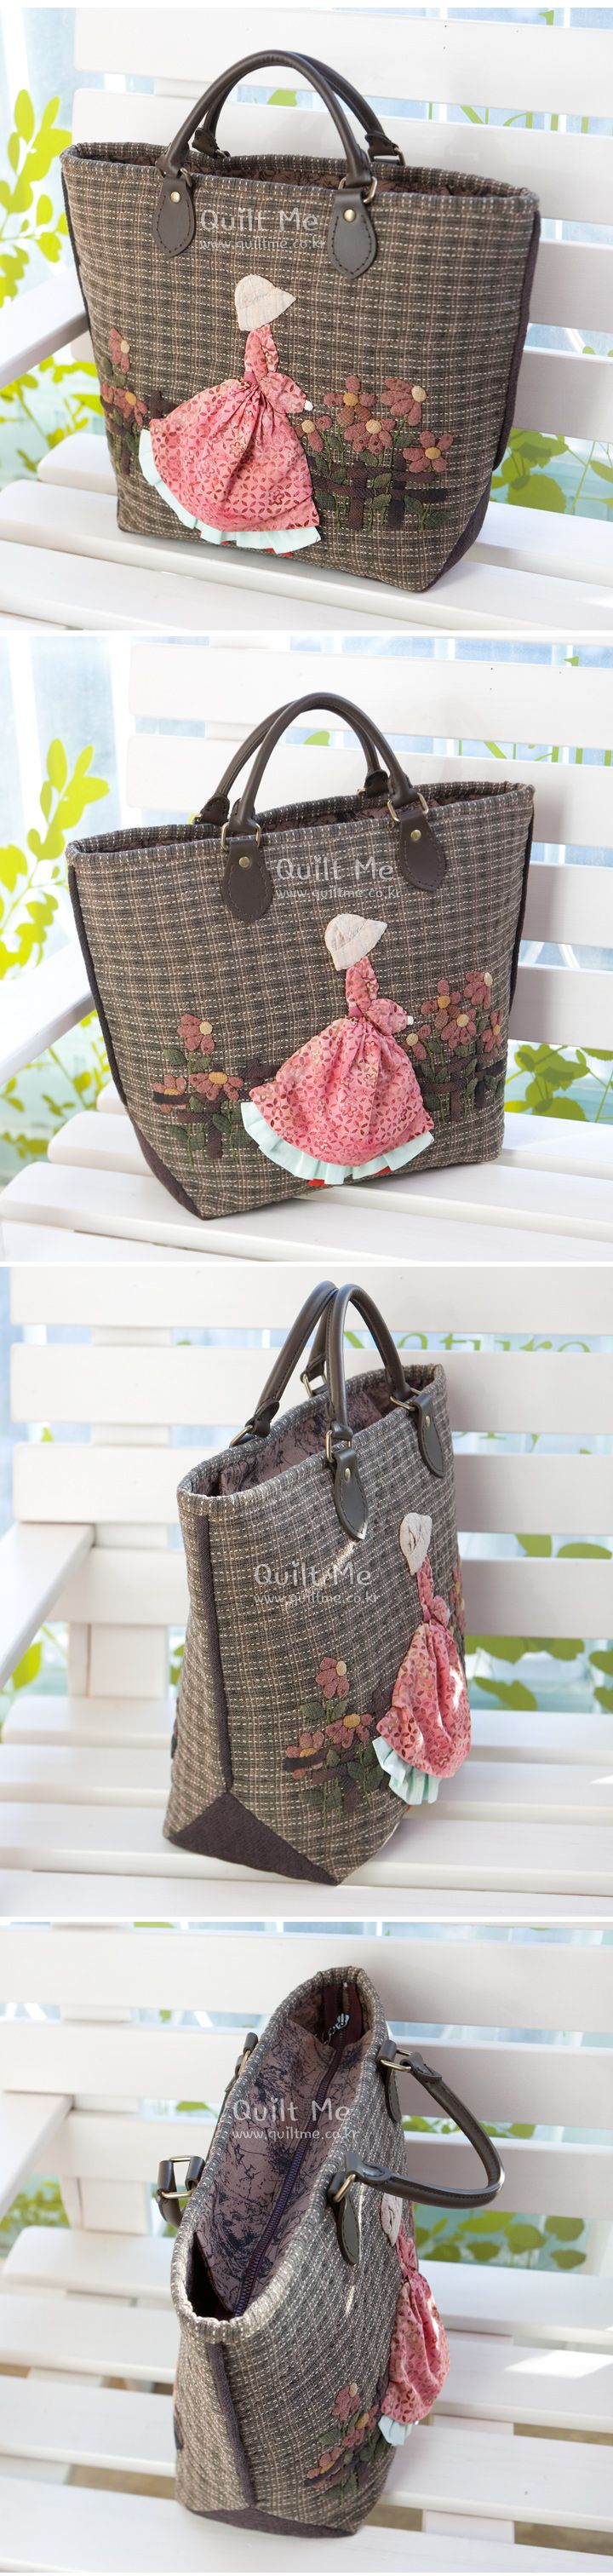 http://quiltme.co.kr/shop/shopdetail.html?branduid=137424